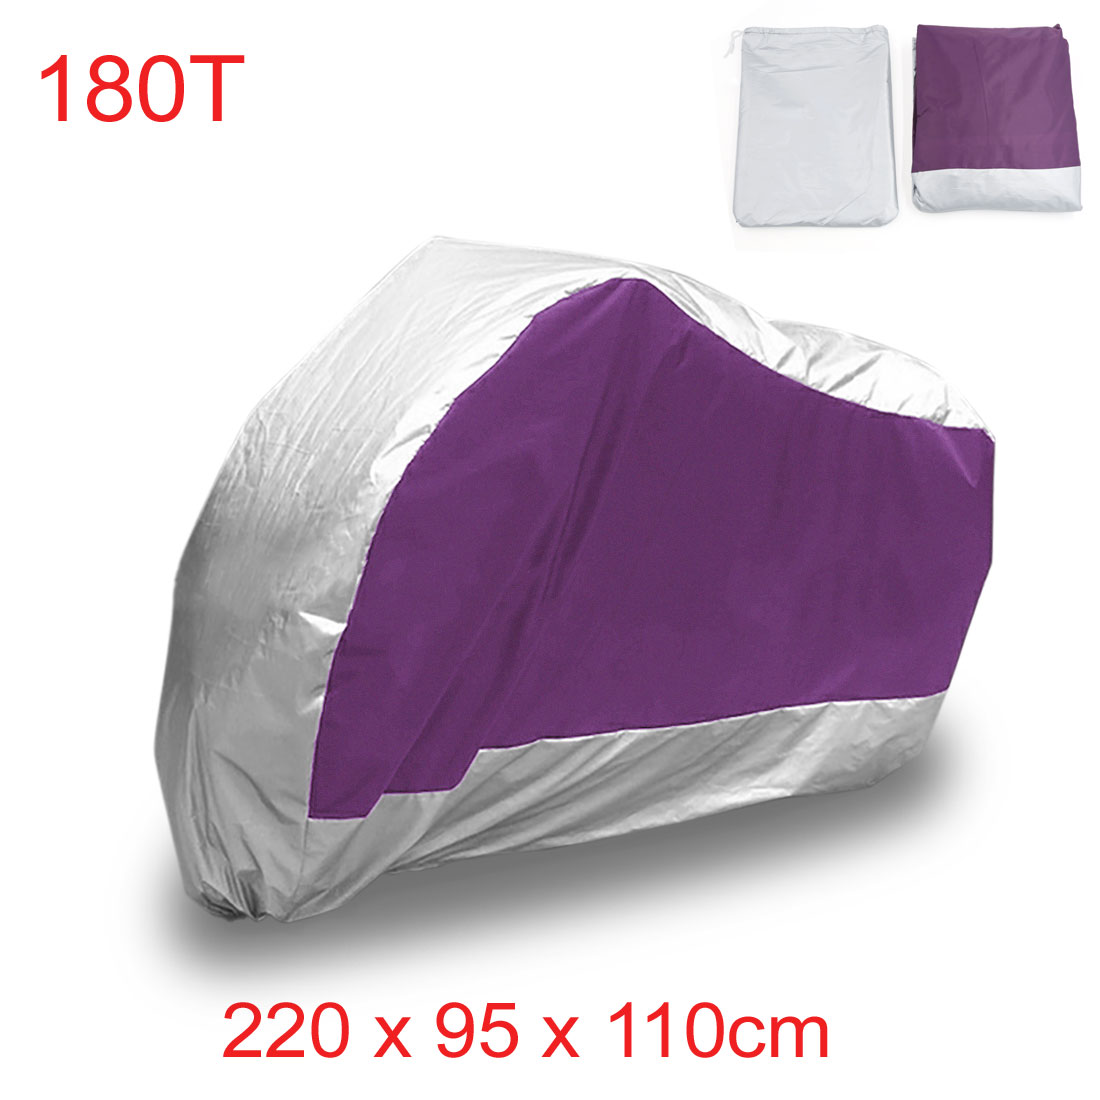 L 180T Purple Silver Outdoor Dust UV Protector For Harley Davidson Rain Motorcycle Cover